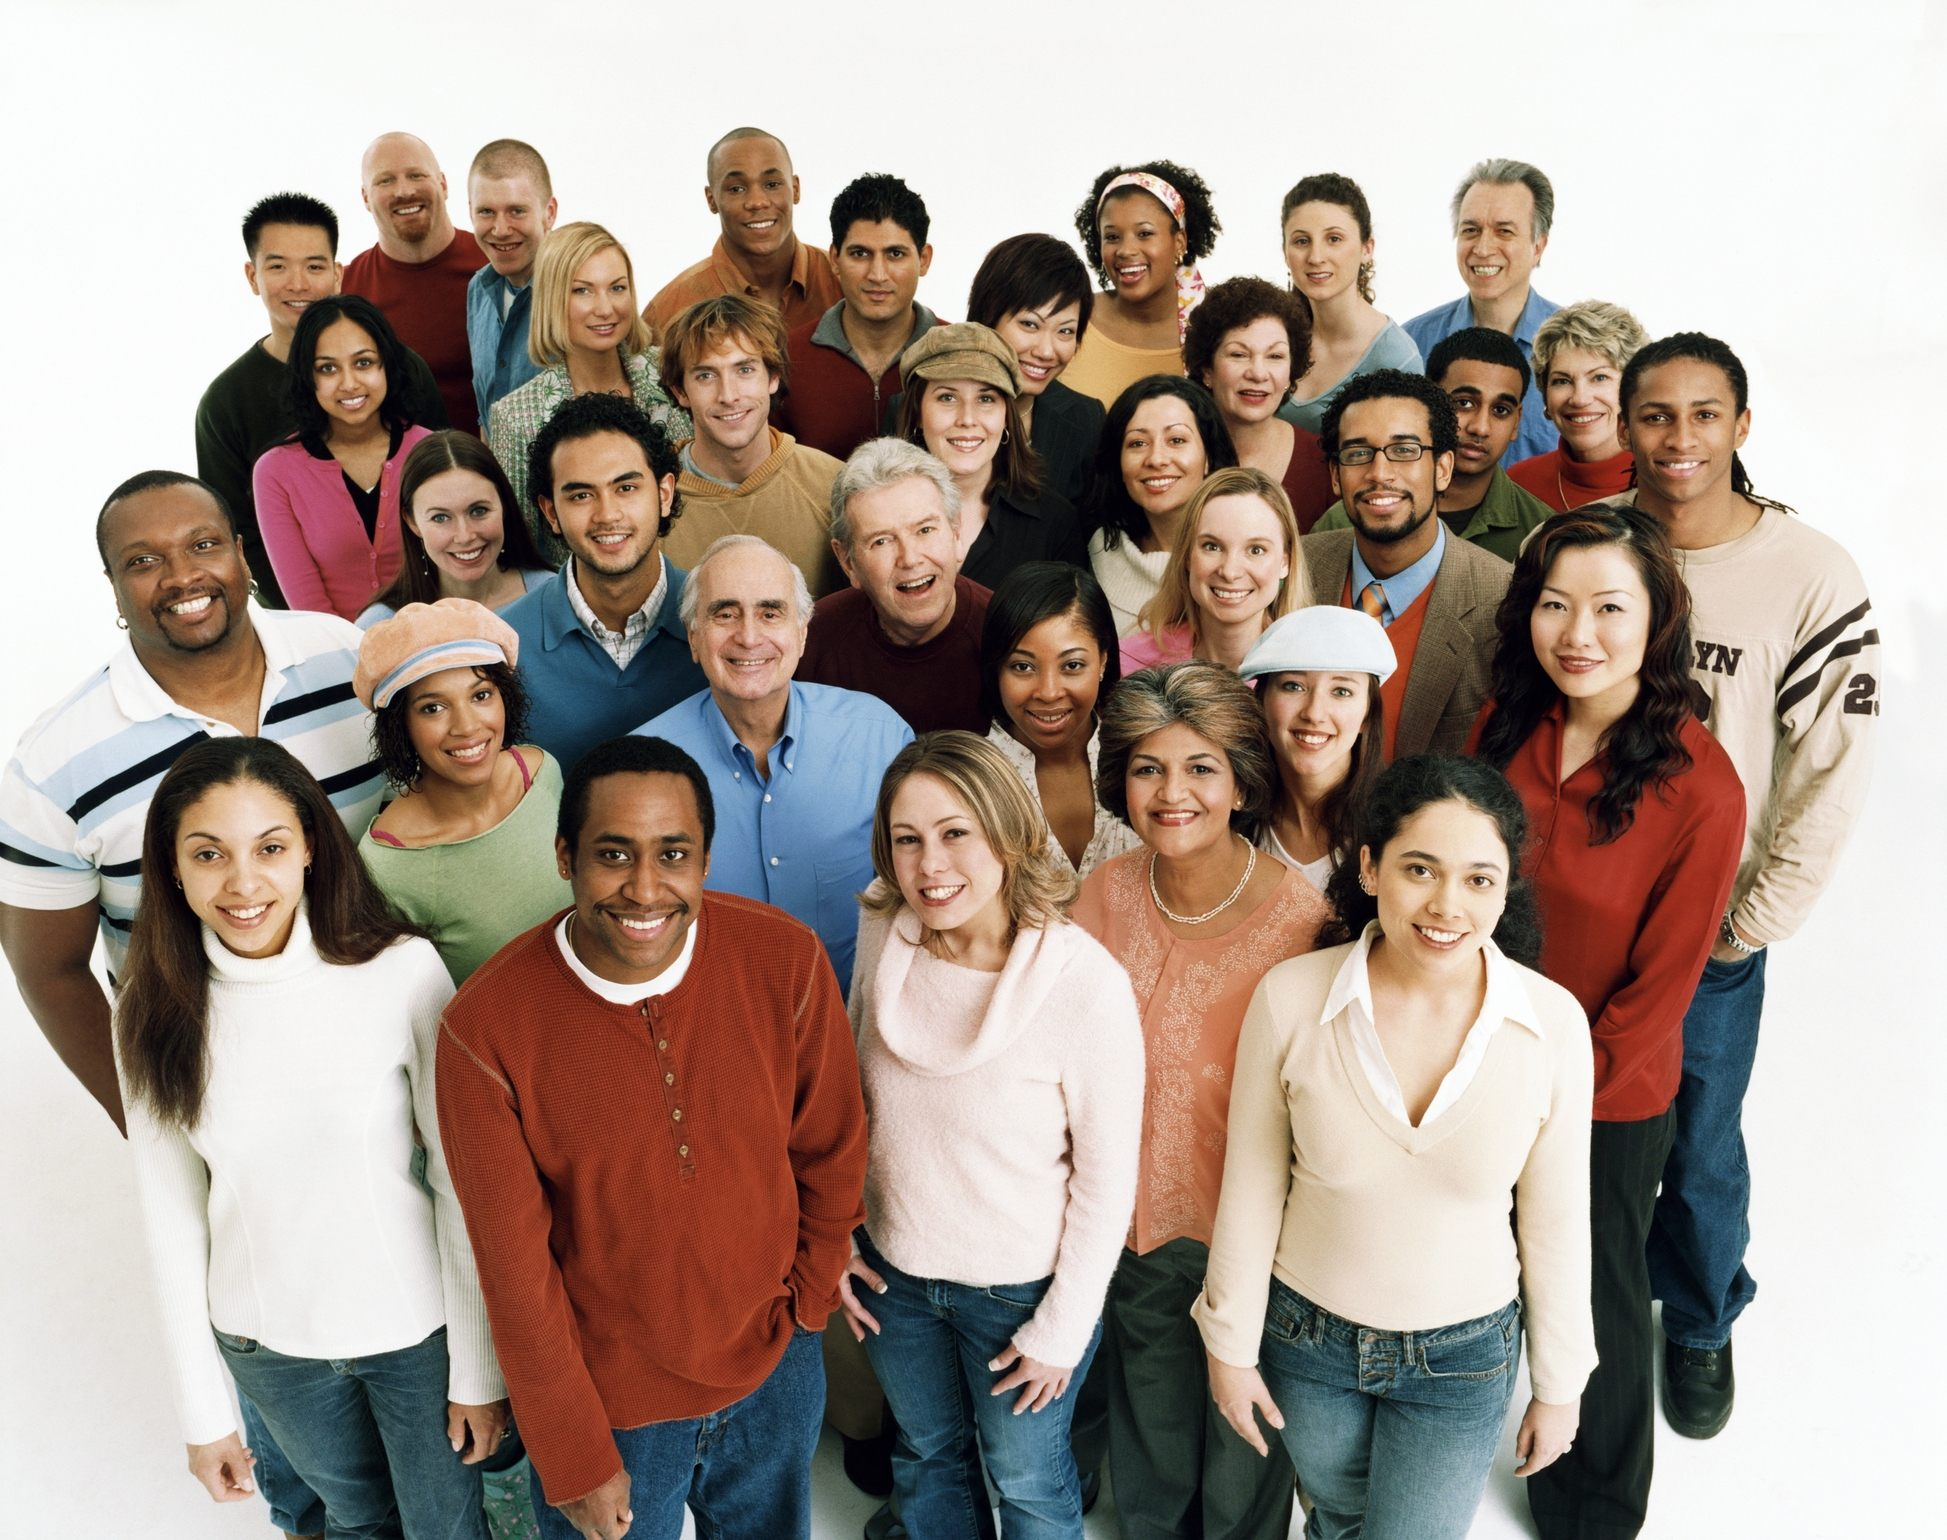 Studio Shot of a Large Mixed Age, Multiethnic Group of Men and Women